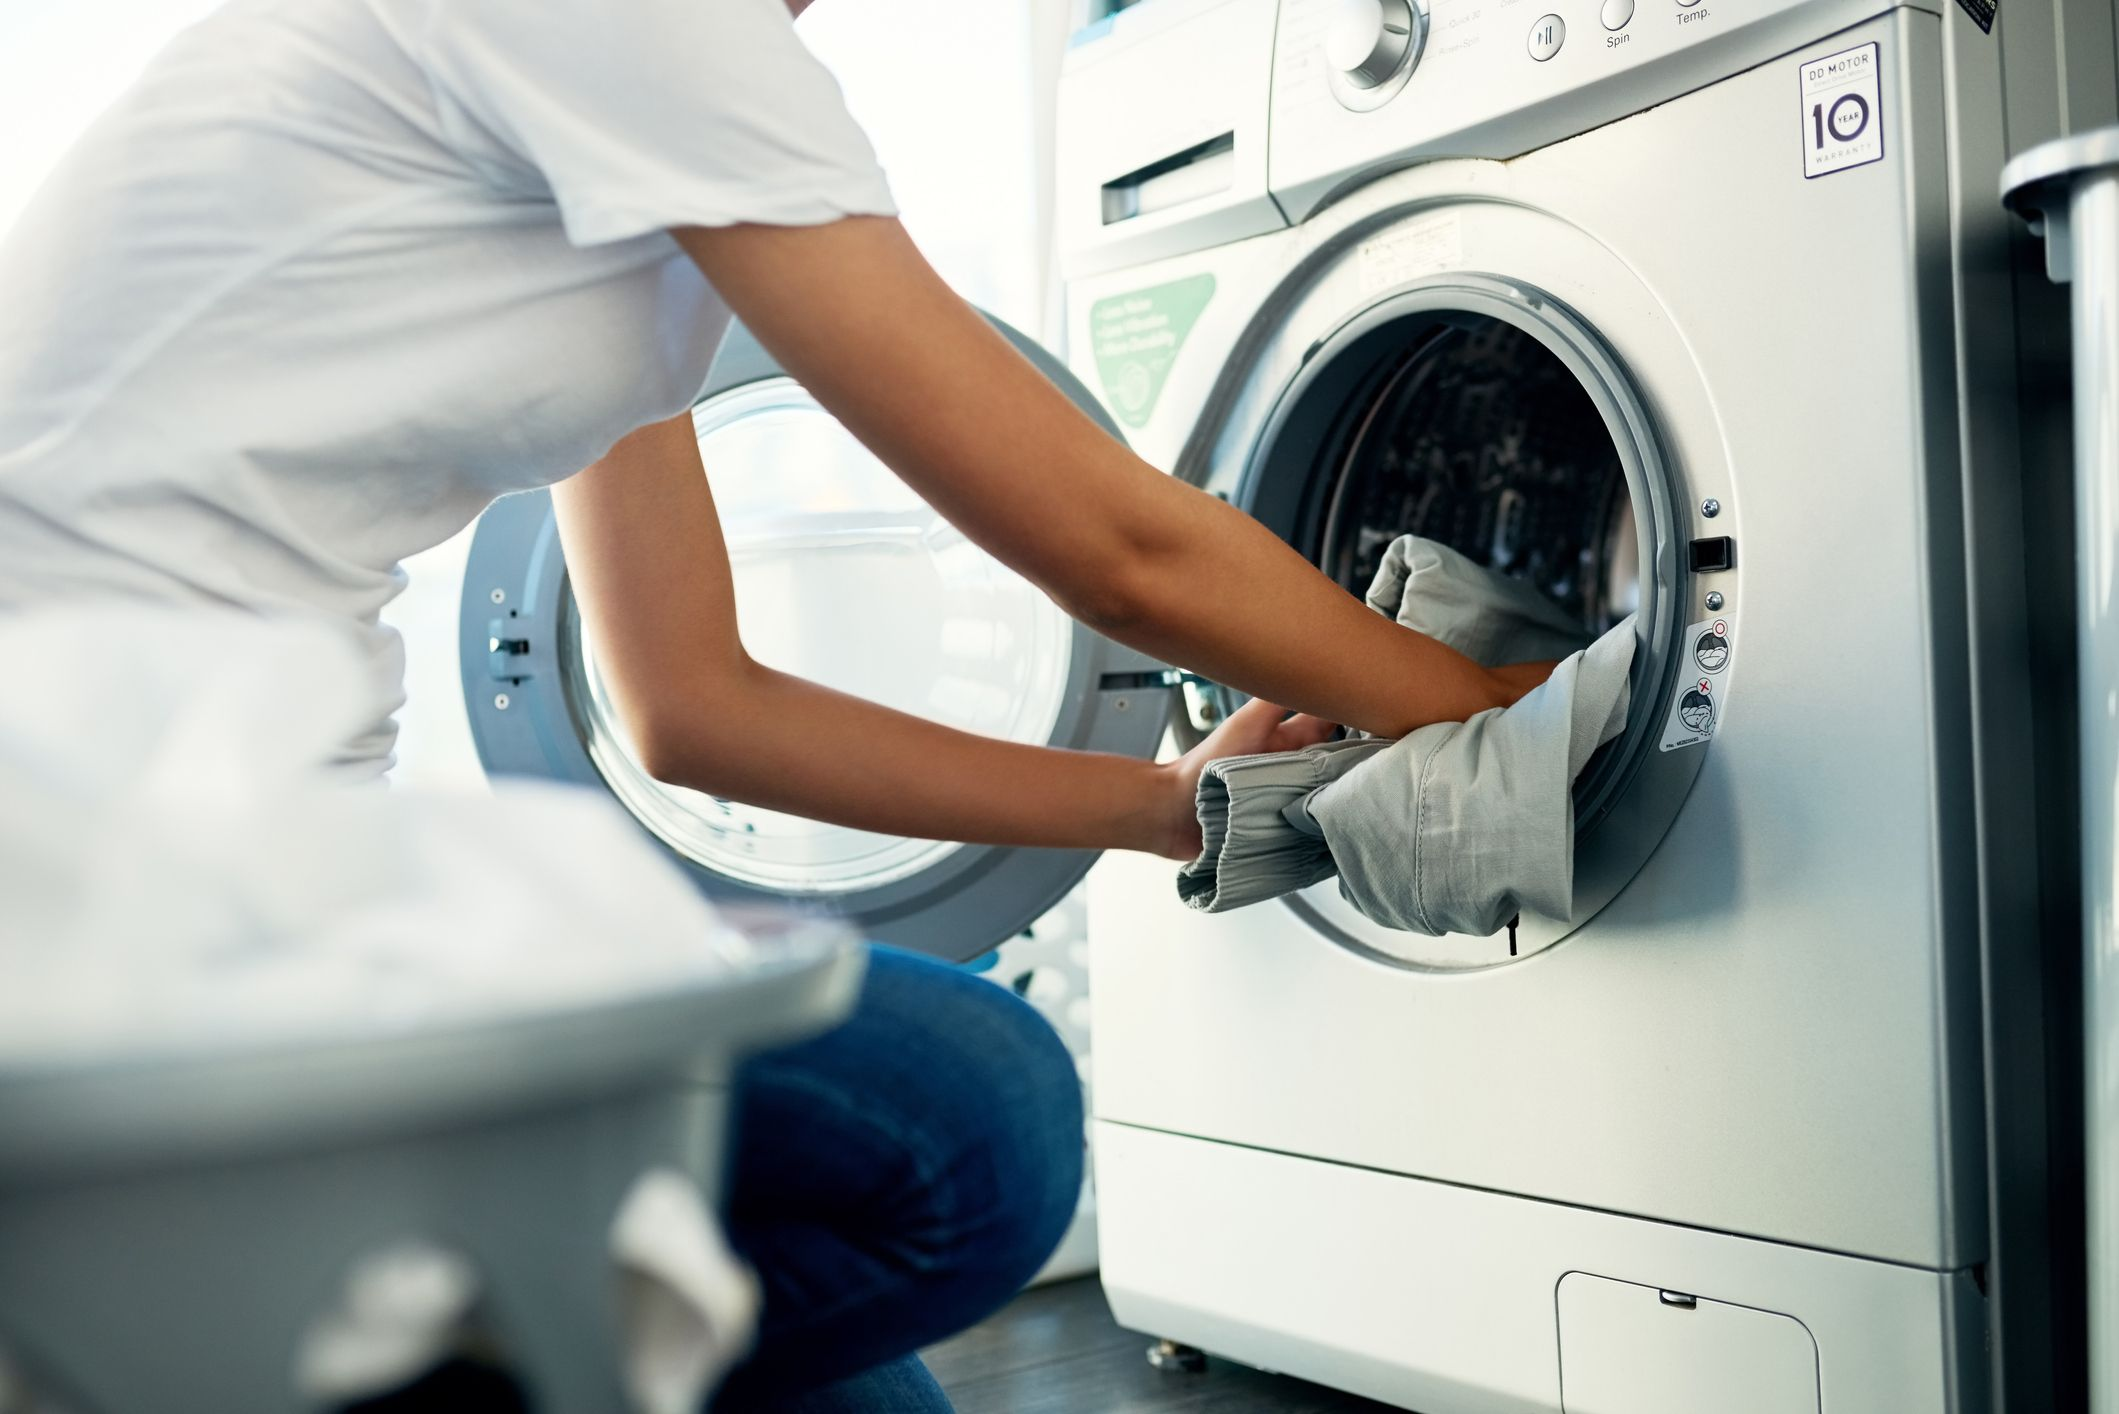 How Washing Machines Could Be a Breeding Ground for Hazardous Germs